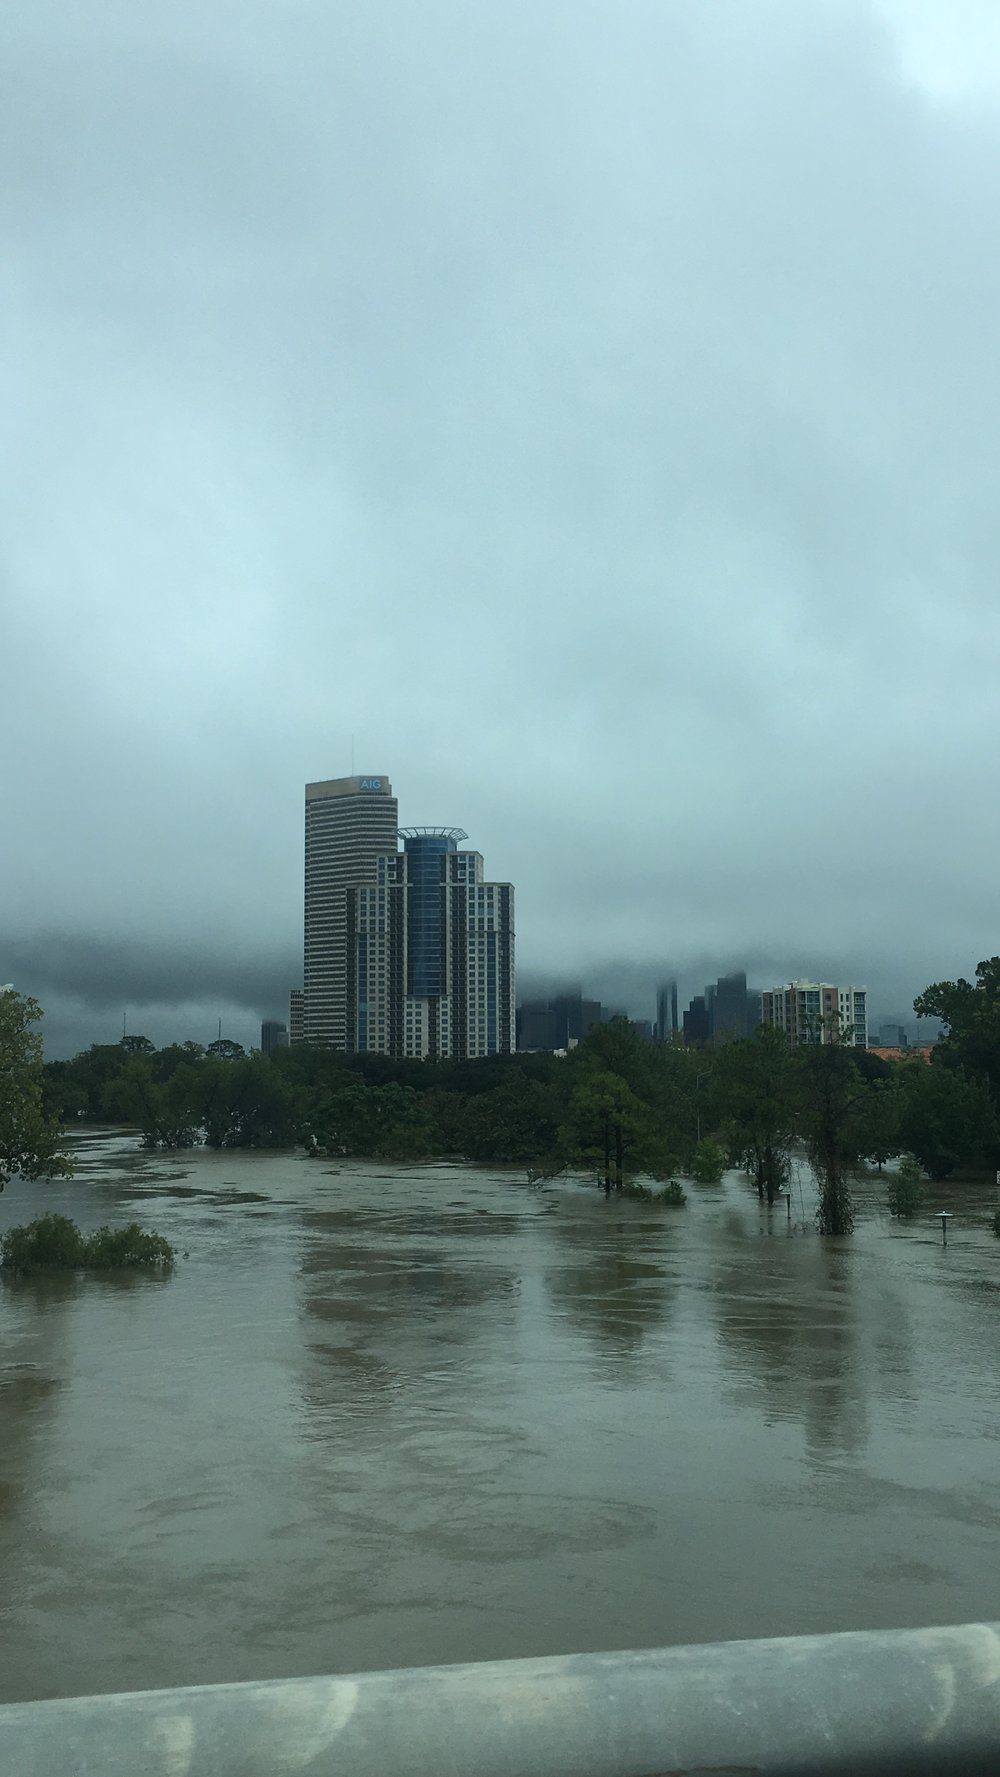 And here's a look toward downtown. That's Buffalo Bayou up out of its banks and covering two major roads. We live near a bayou. Houston is a marsh. We're used to flooding. This was bizarre.